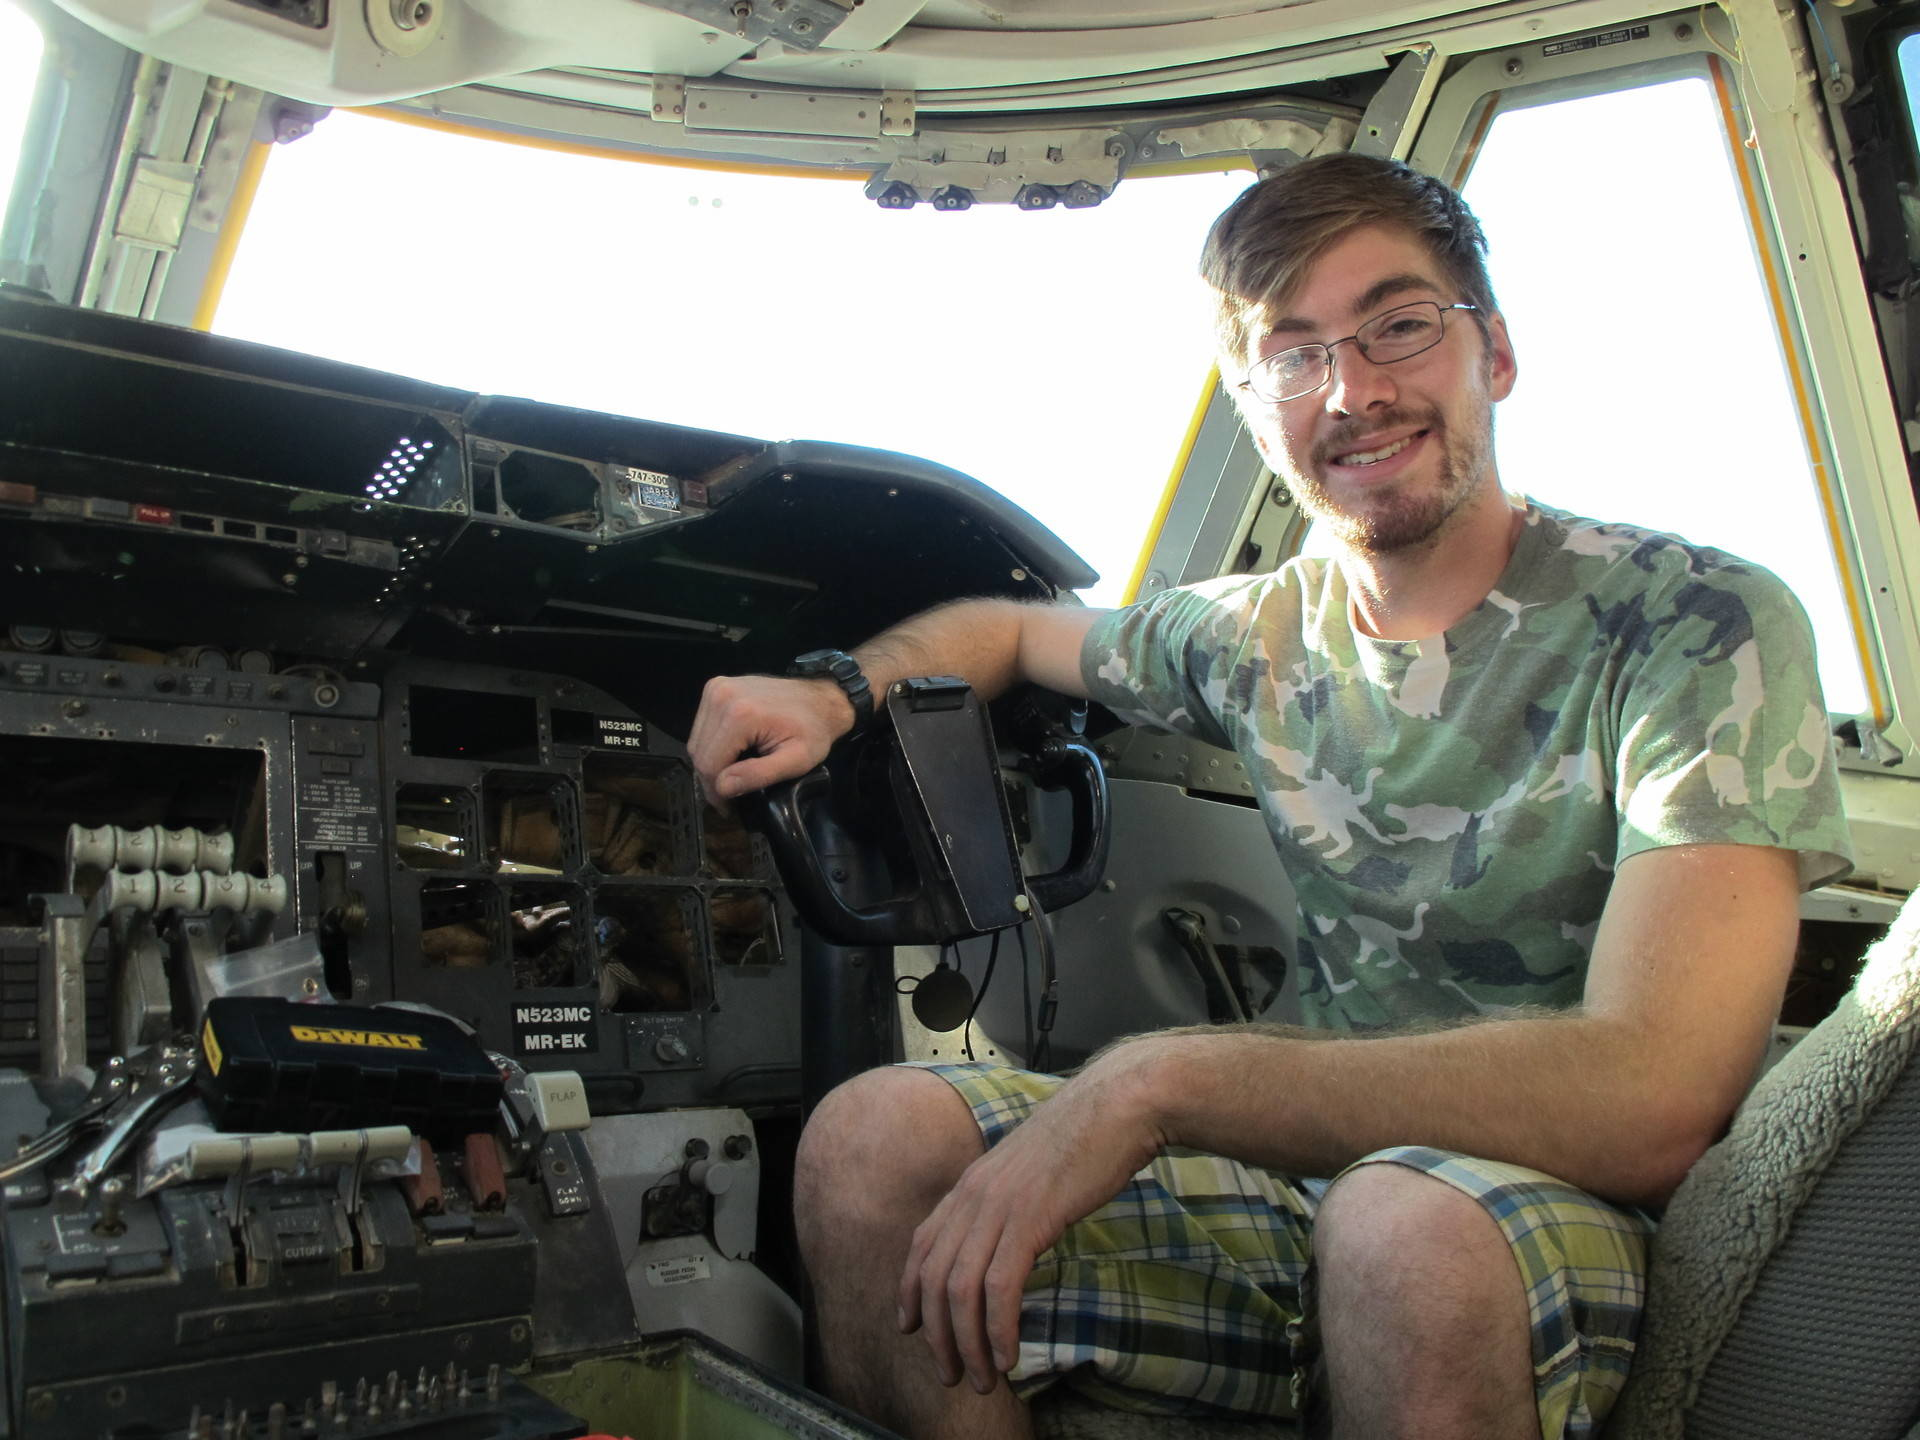 Volunteer Nick Avila of San Francisco sits in the 747 cockpit that he's helping to fix up for Burning Man. Susan Valot/KQED